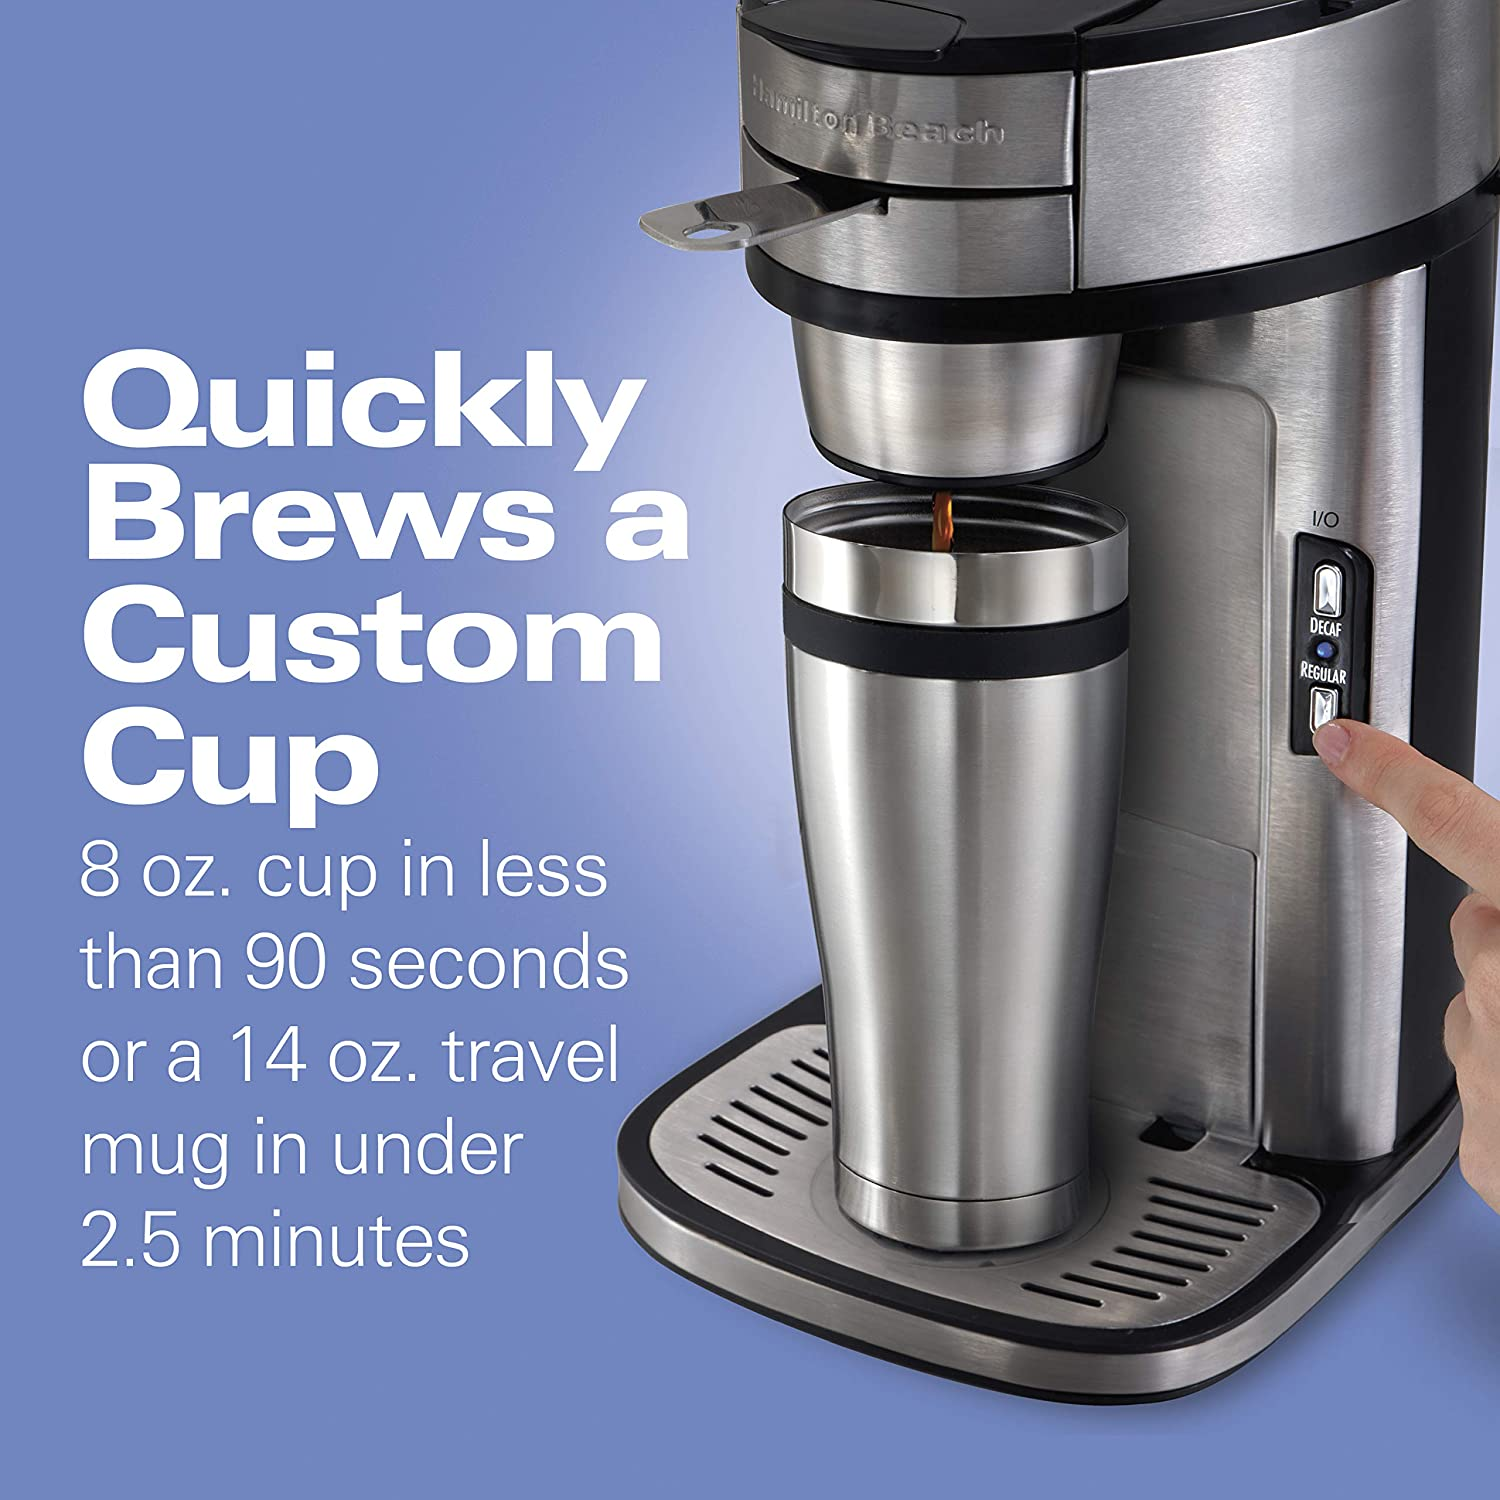 Hamilton Beach Scoop Single Serve Coffee Maker, Fast Brewing, Stainless Steel